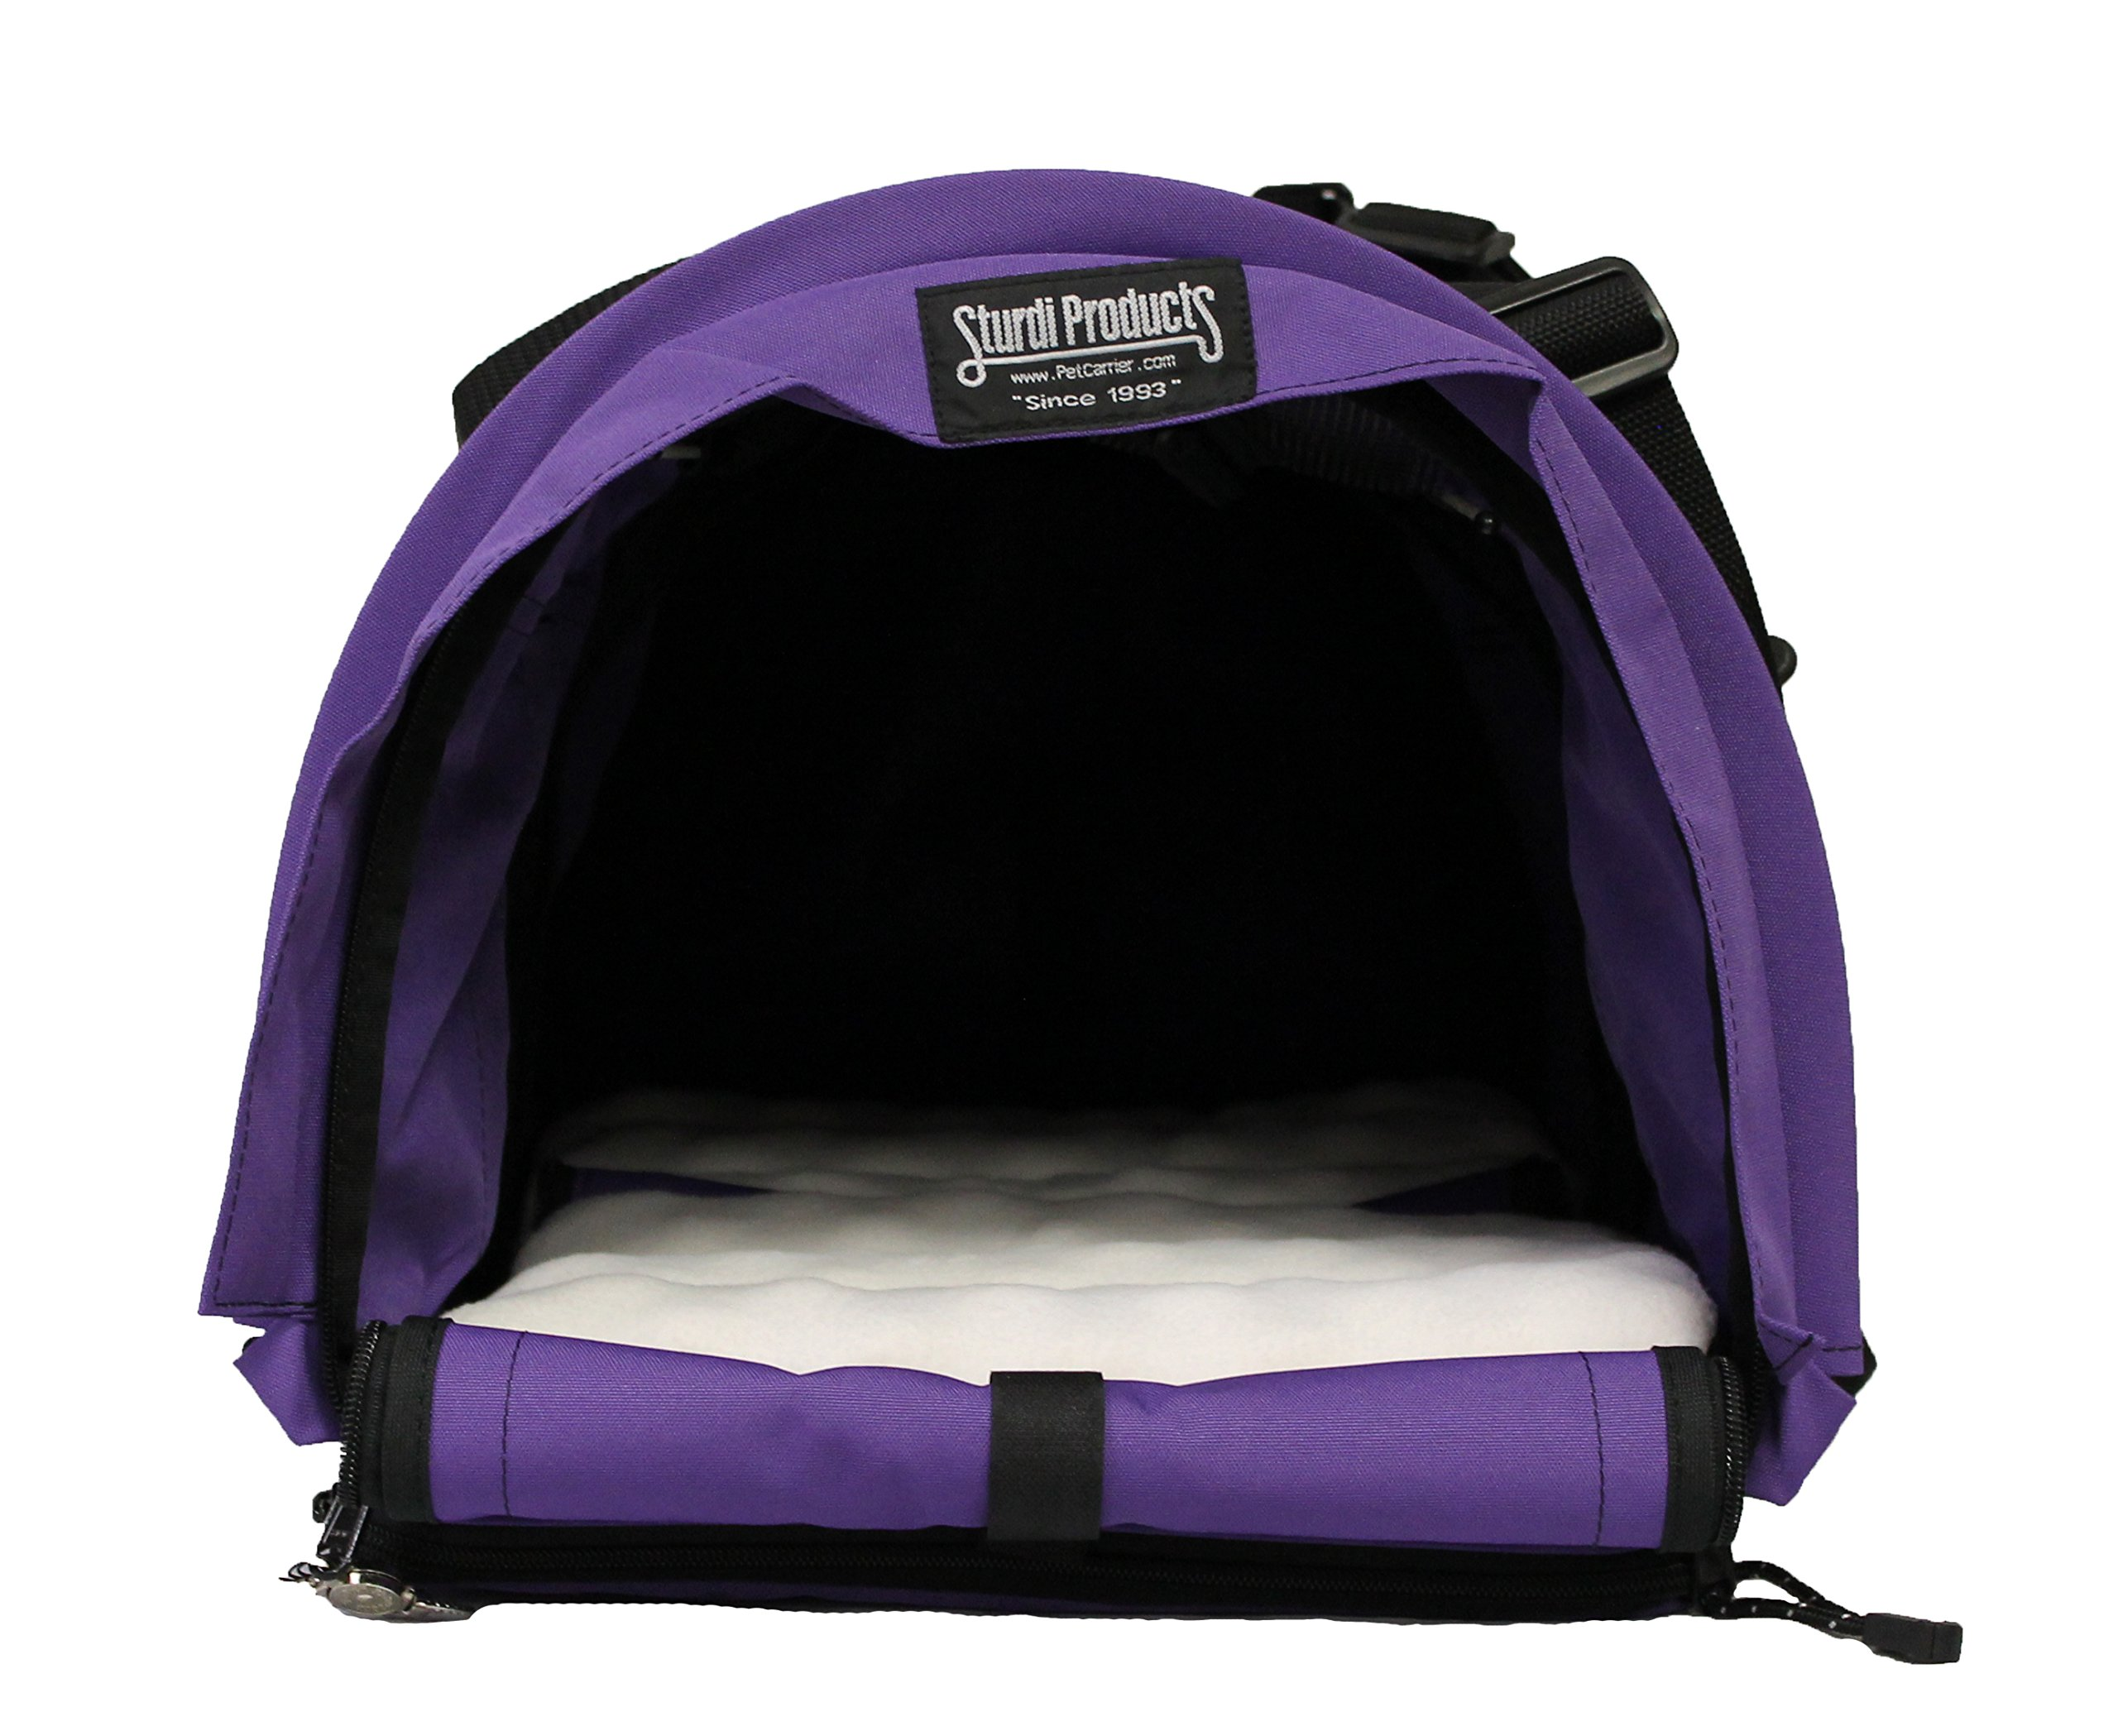 Sturdi Products Double Sided Divided Pet Carrier, Large, Purple